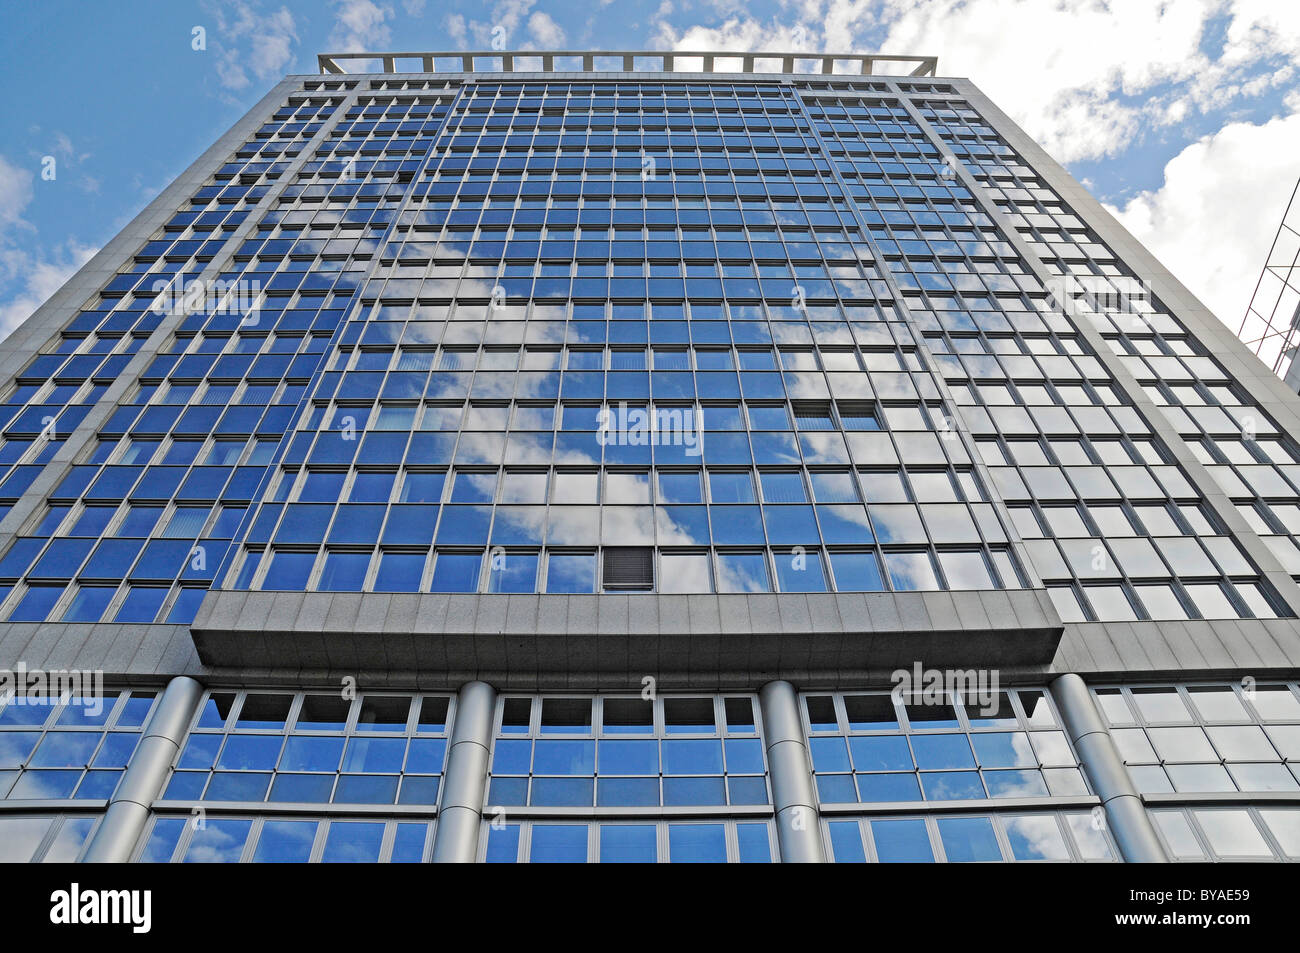 Evonik Industries AG, energy company, corporate head office, registered office, Essen, Ruhr area, North Rhine-Westphalia - Stock Image